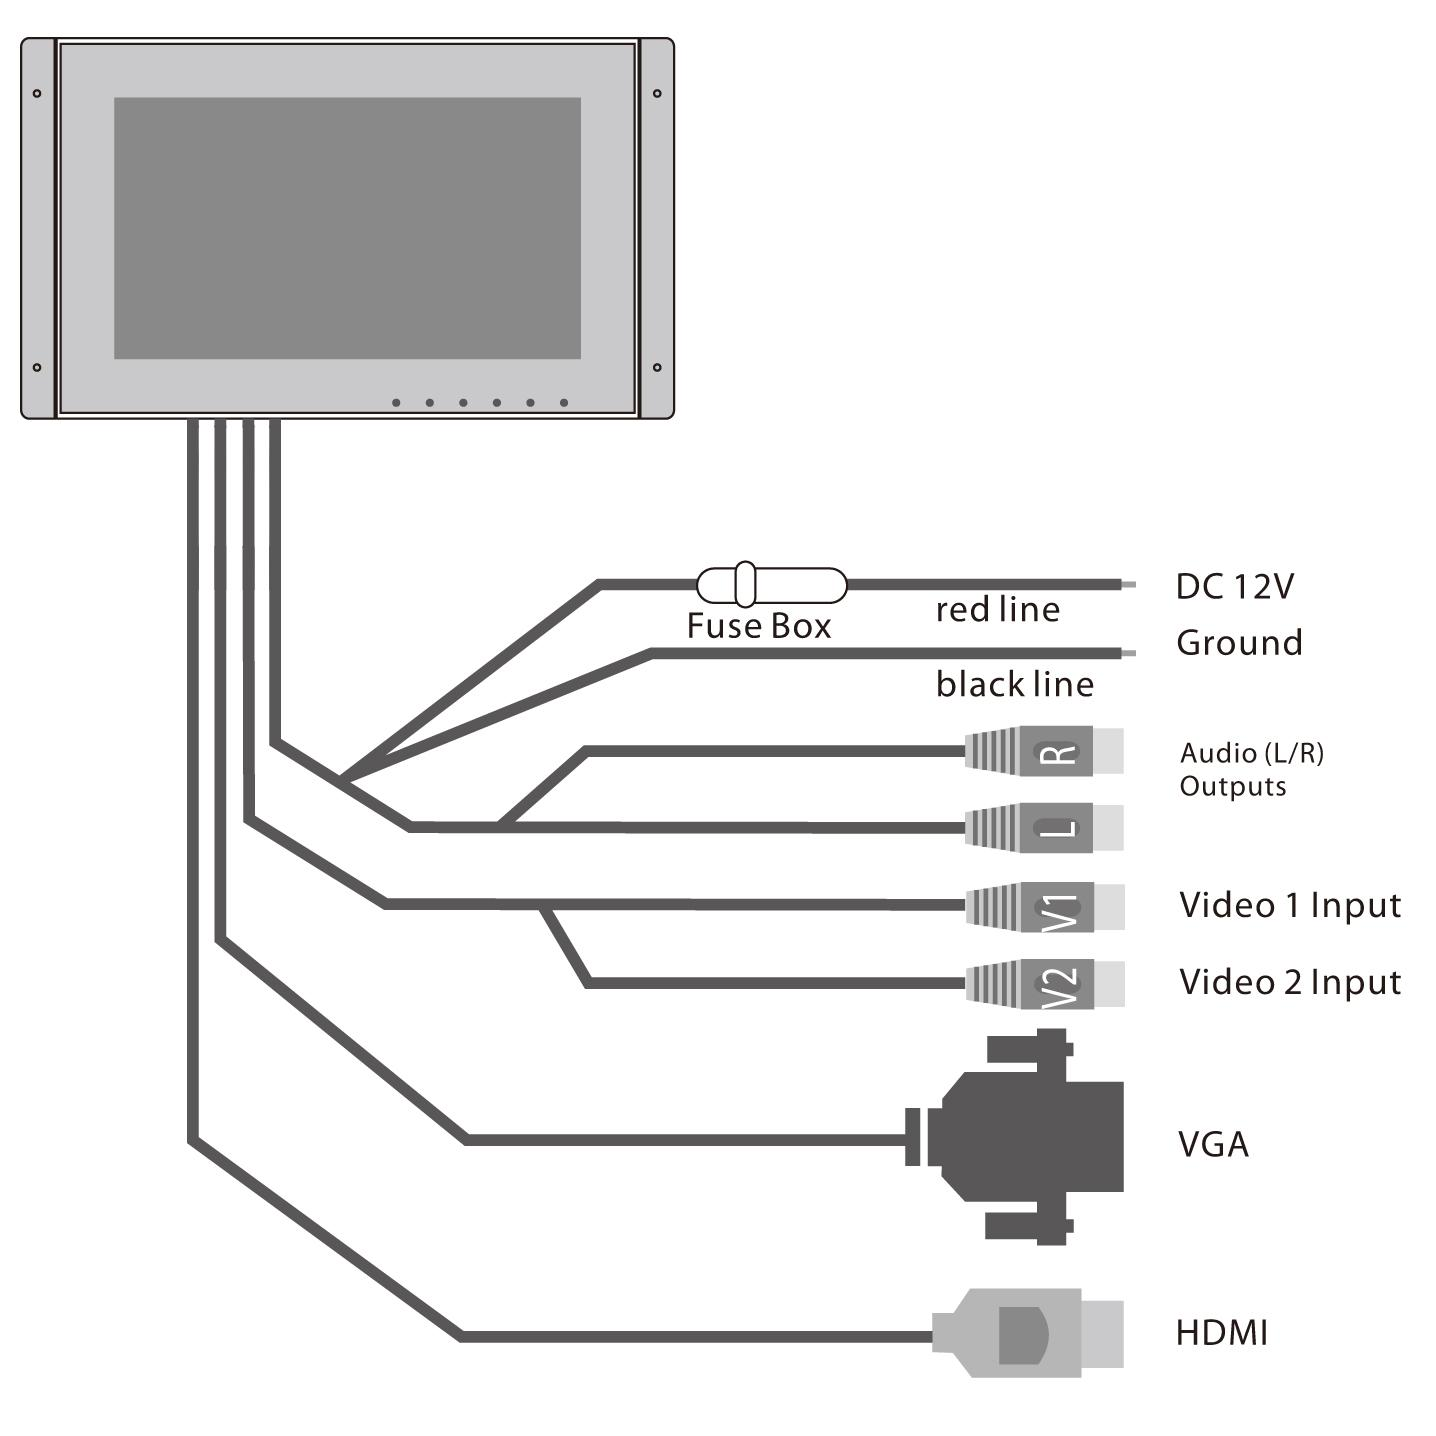 Computer Monitor Wiring Diagram Trusted Dc Fuse Box Home Pylehome Plvw125u And Office Tvs Monitors Rh Pyleaudio Com Connectors Vga To Rca